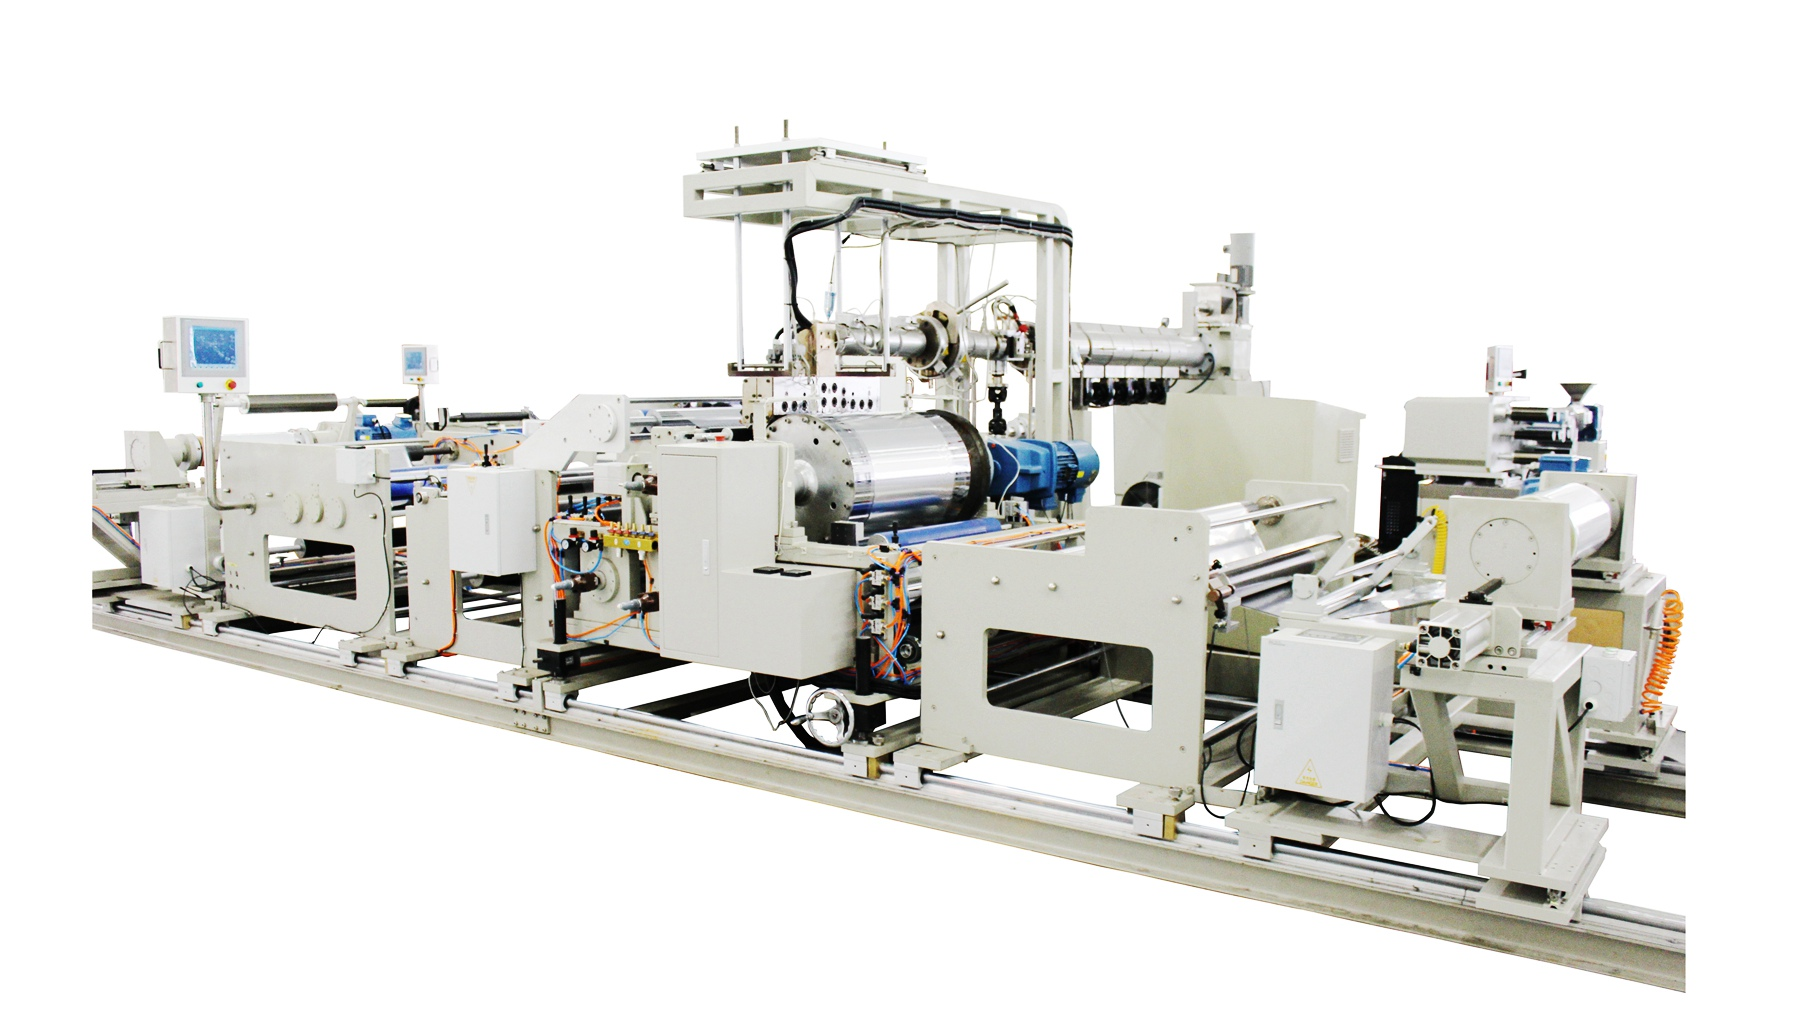 Aluminum plastic film production line for lithium ion battery